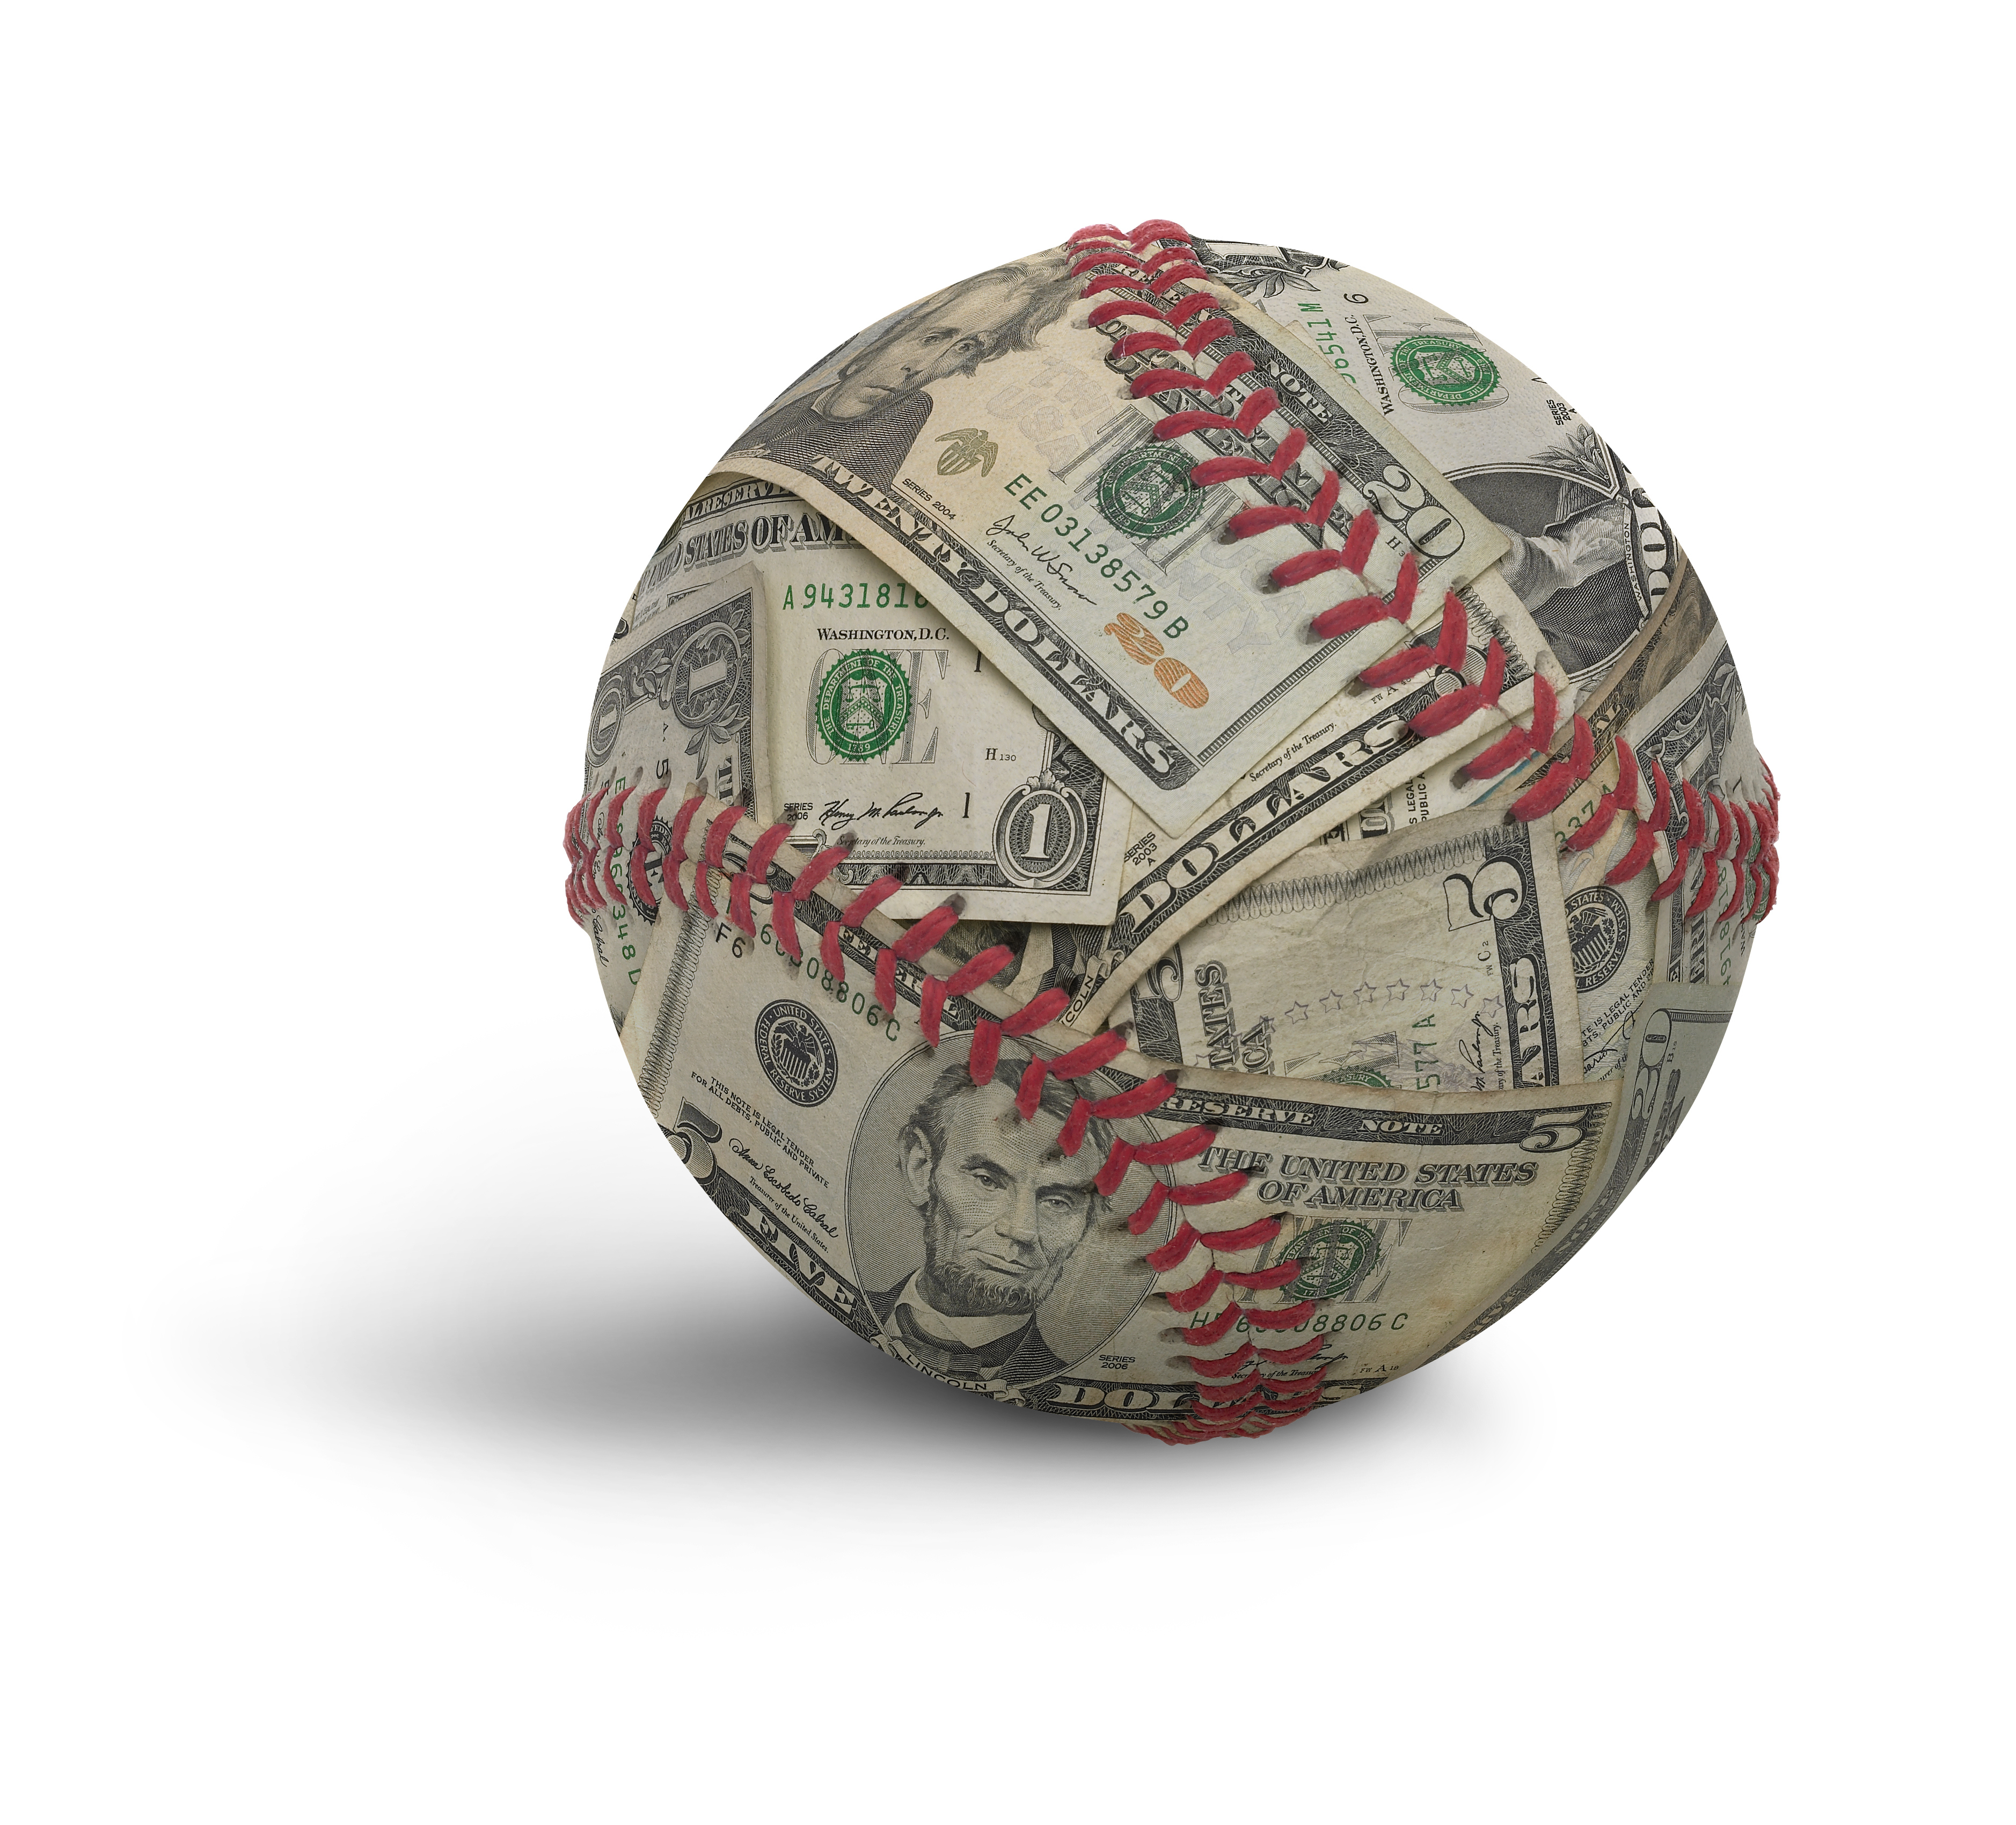 A baseball made out of money. Laces are still showing through. Intended to show the commercialization of sports. The image has an embedded clipping path.